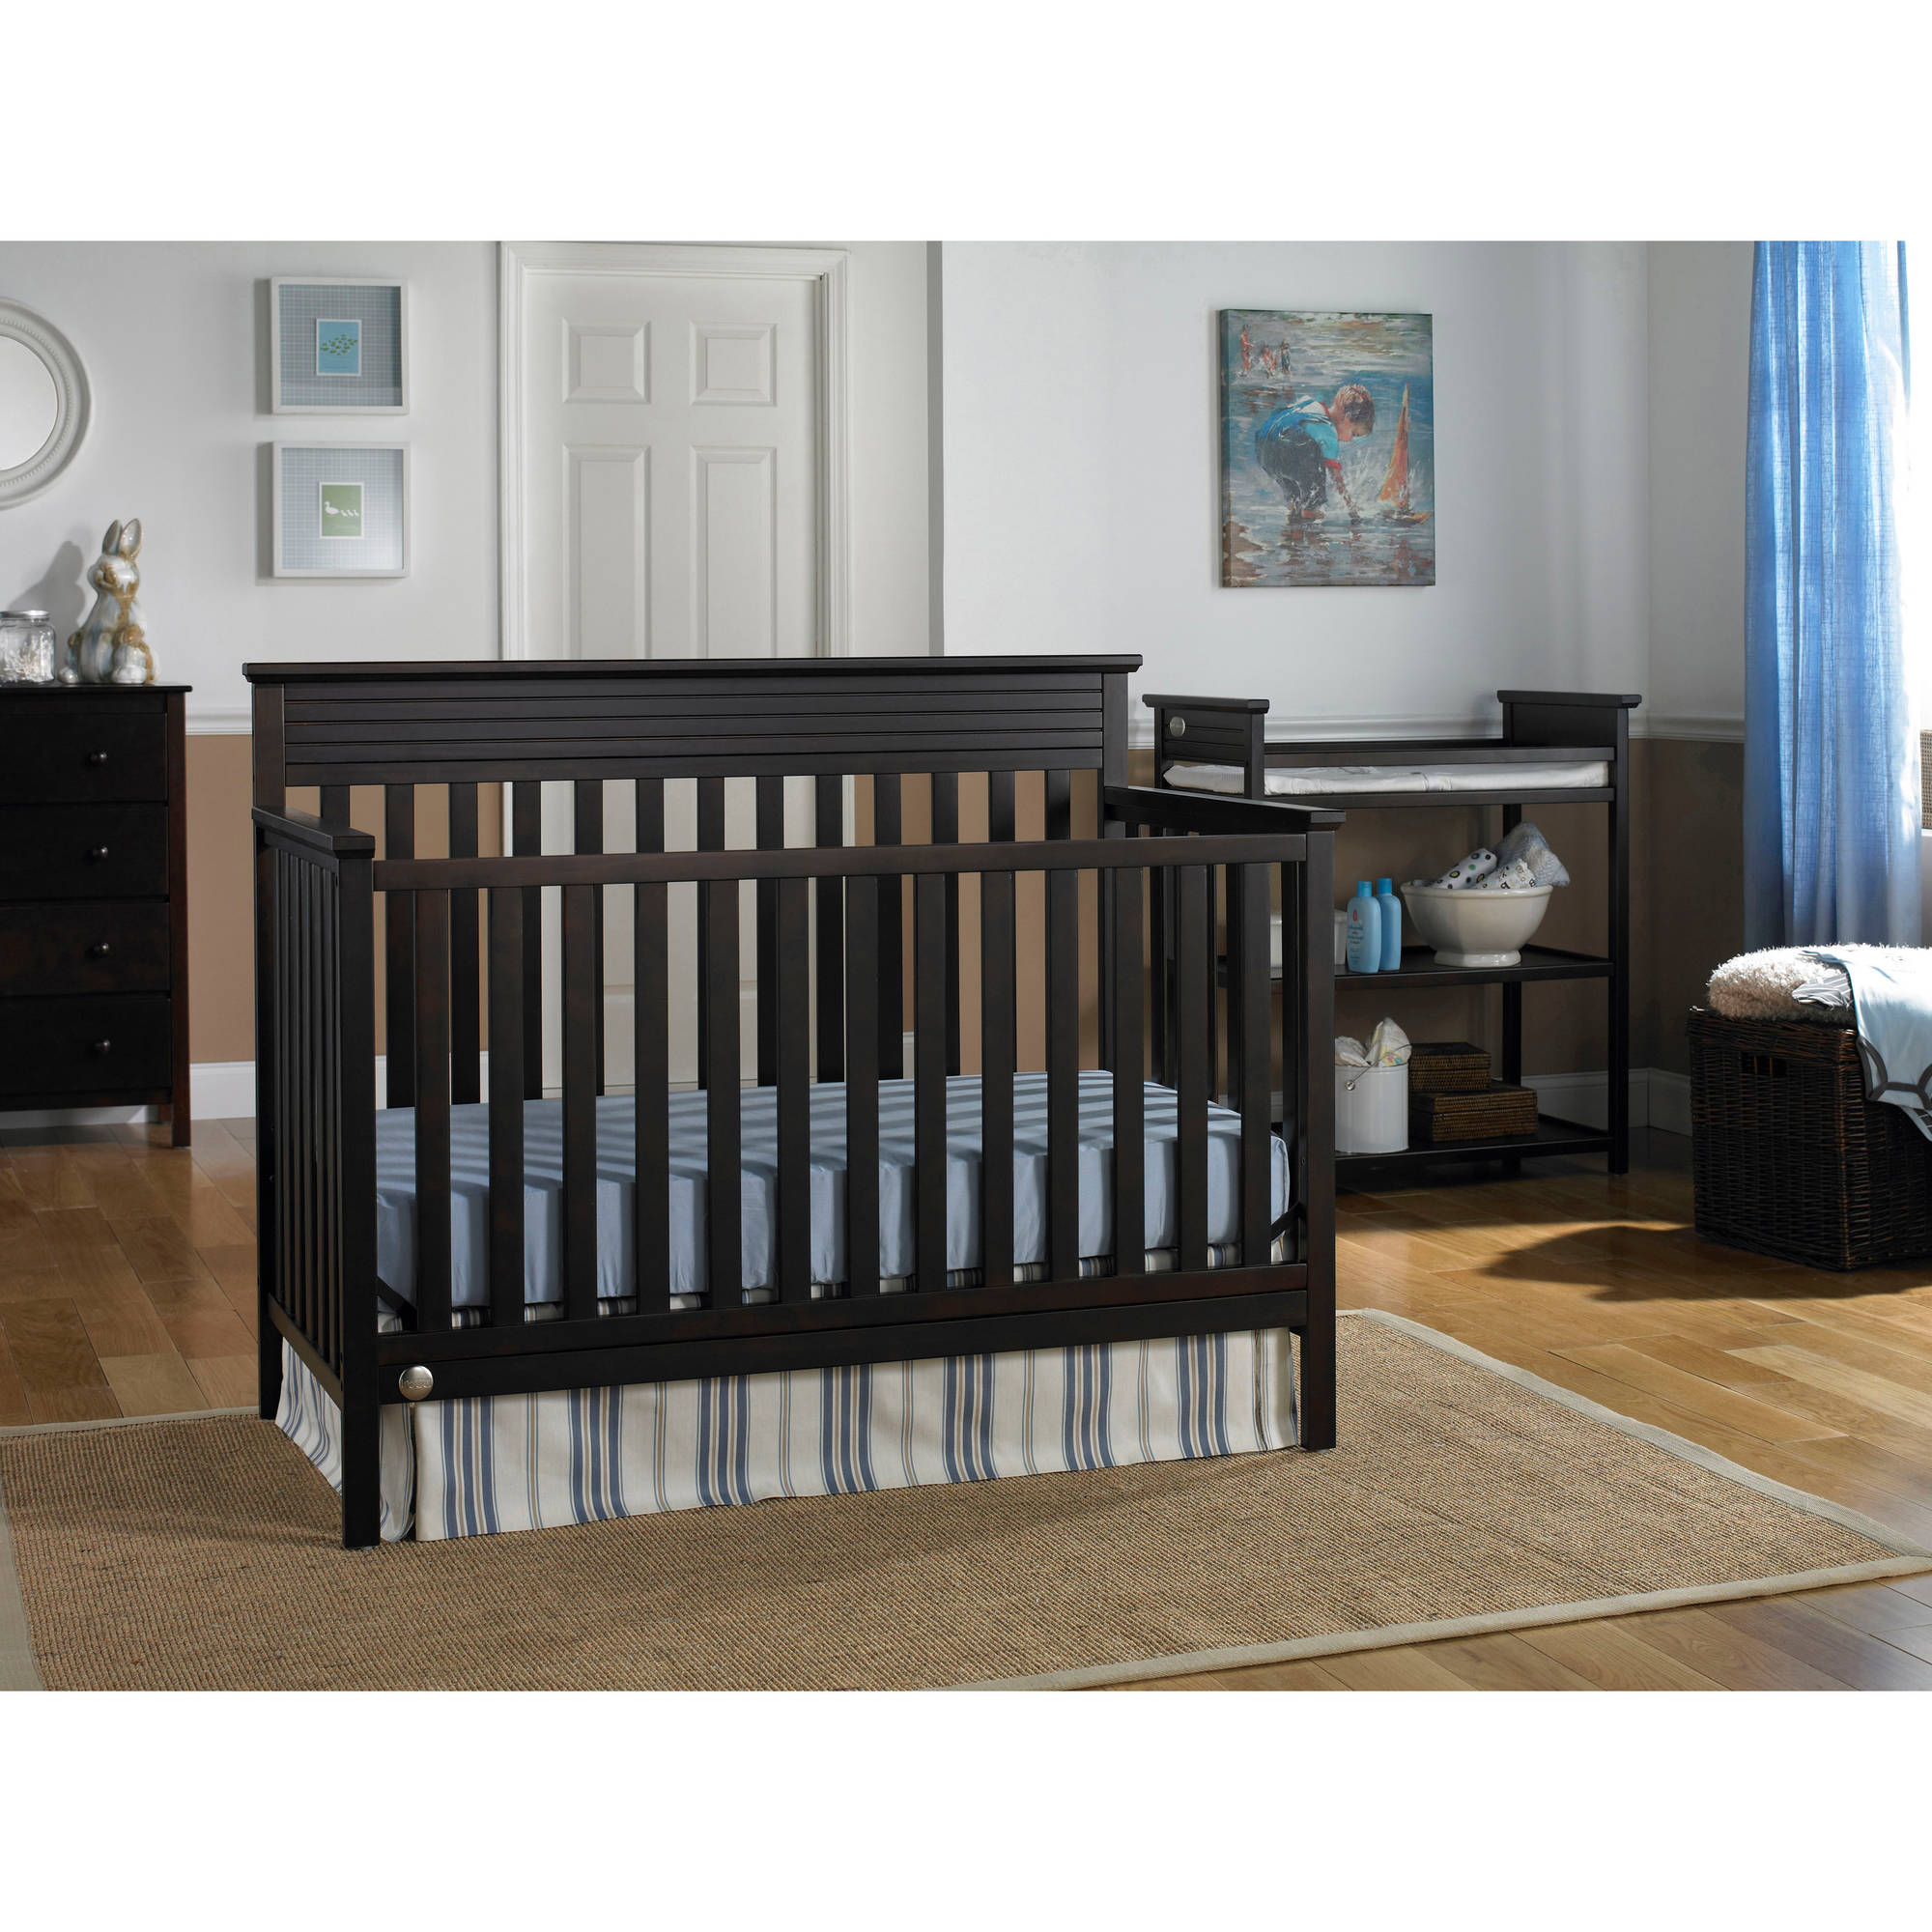 Fisher-Price Newbury 4-in-1 Convertible Crib Collection, Espresso